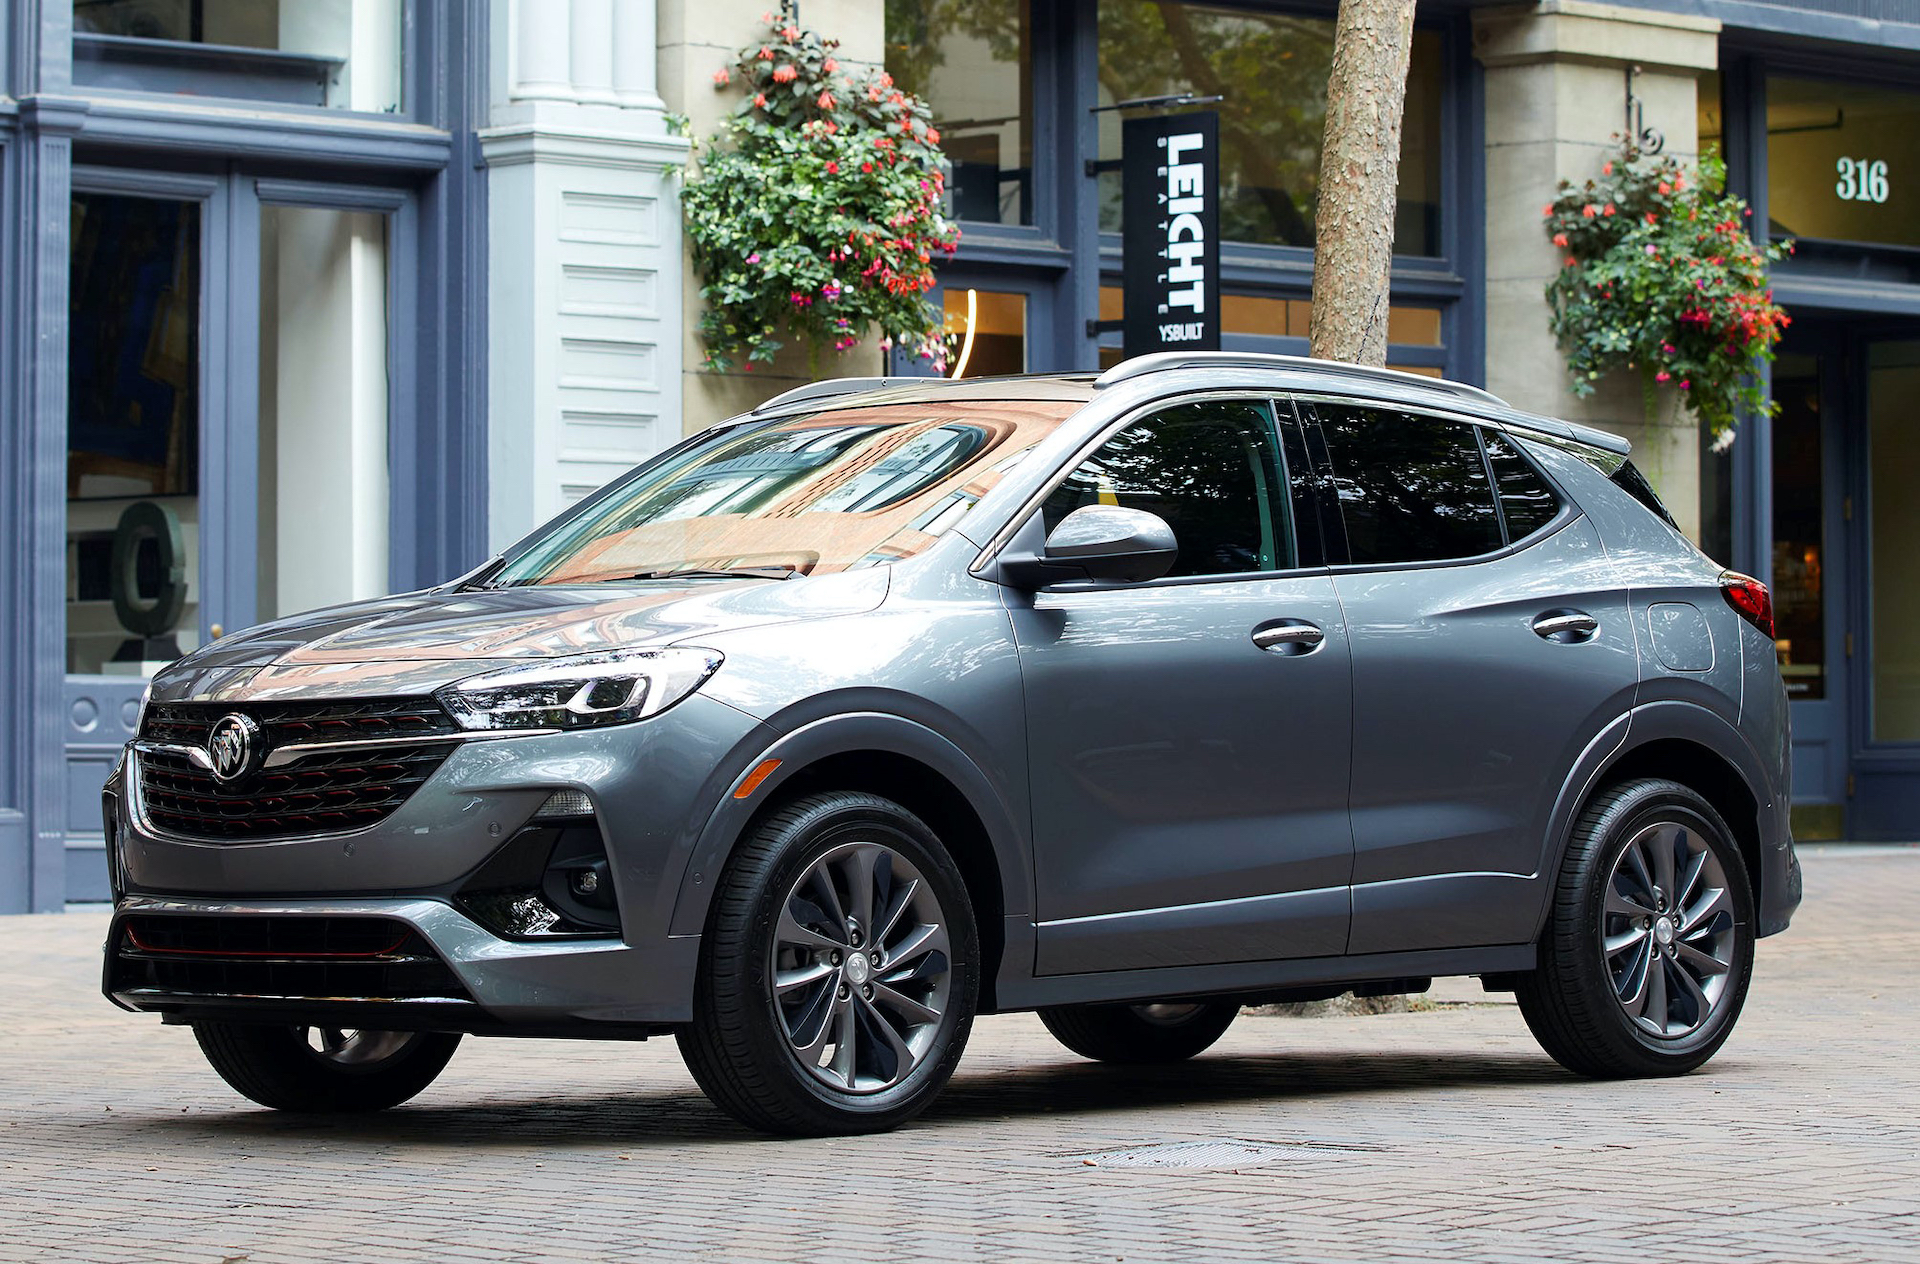 2021 Buick Encore Review, Ratings, Specs, Prices, And Photos What Colors Does The 2021 Buick Encore Gx Come In